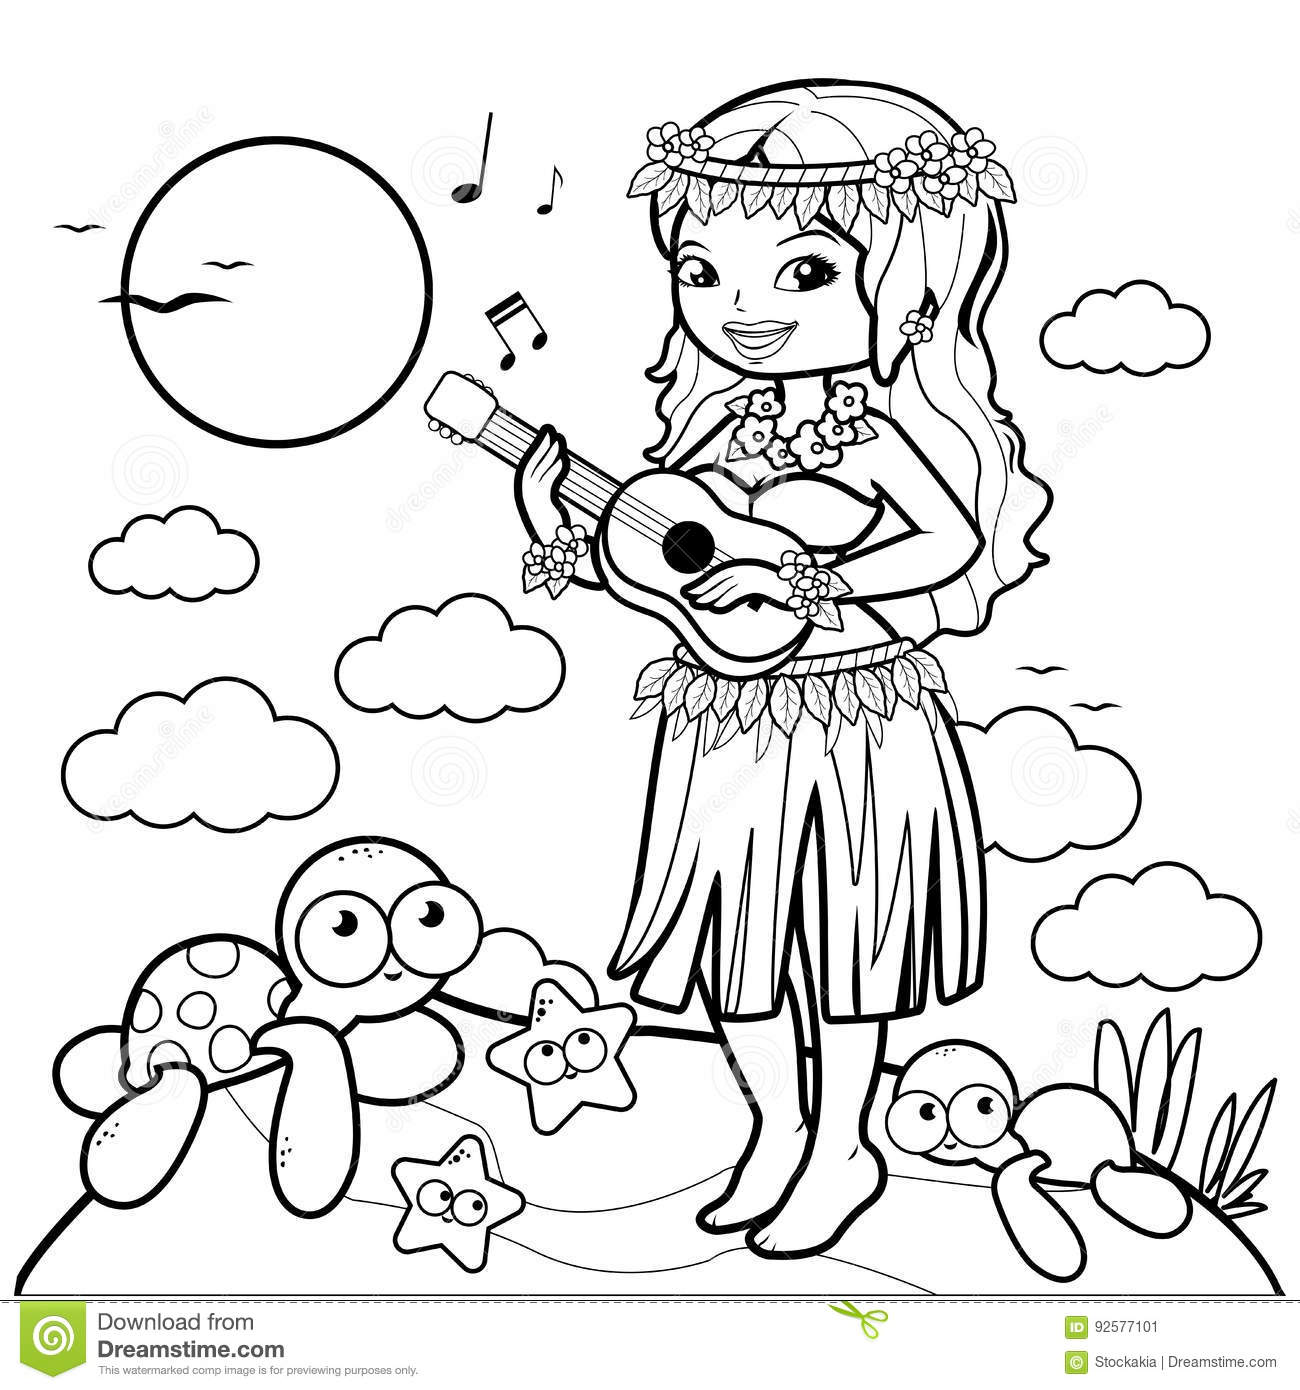 Hula Coloring Pages - Coloring Home | 1390x1300